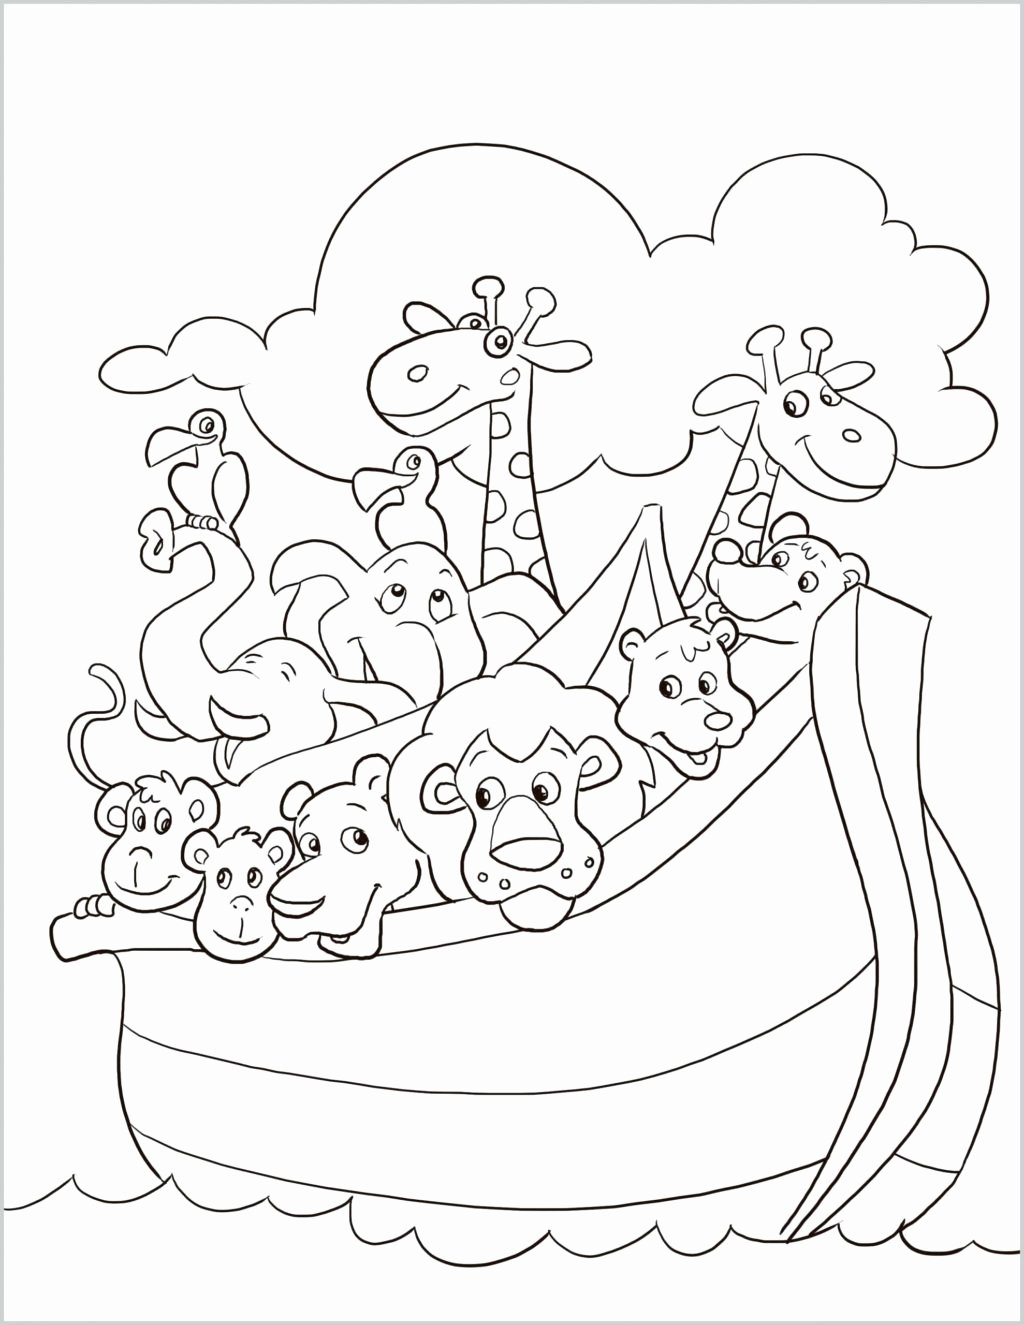 Bible Story Worksheets for Preschoolers Inspirational Worksheet Free Bible Story Printables Image Inspirations